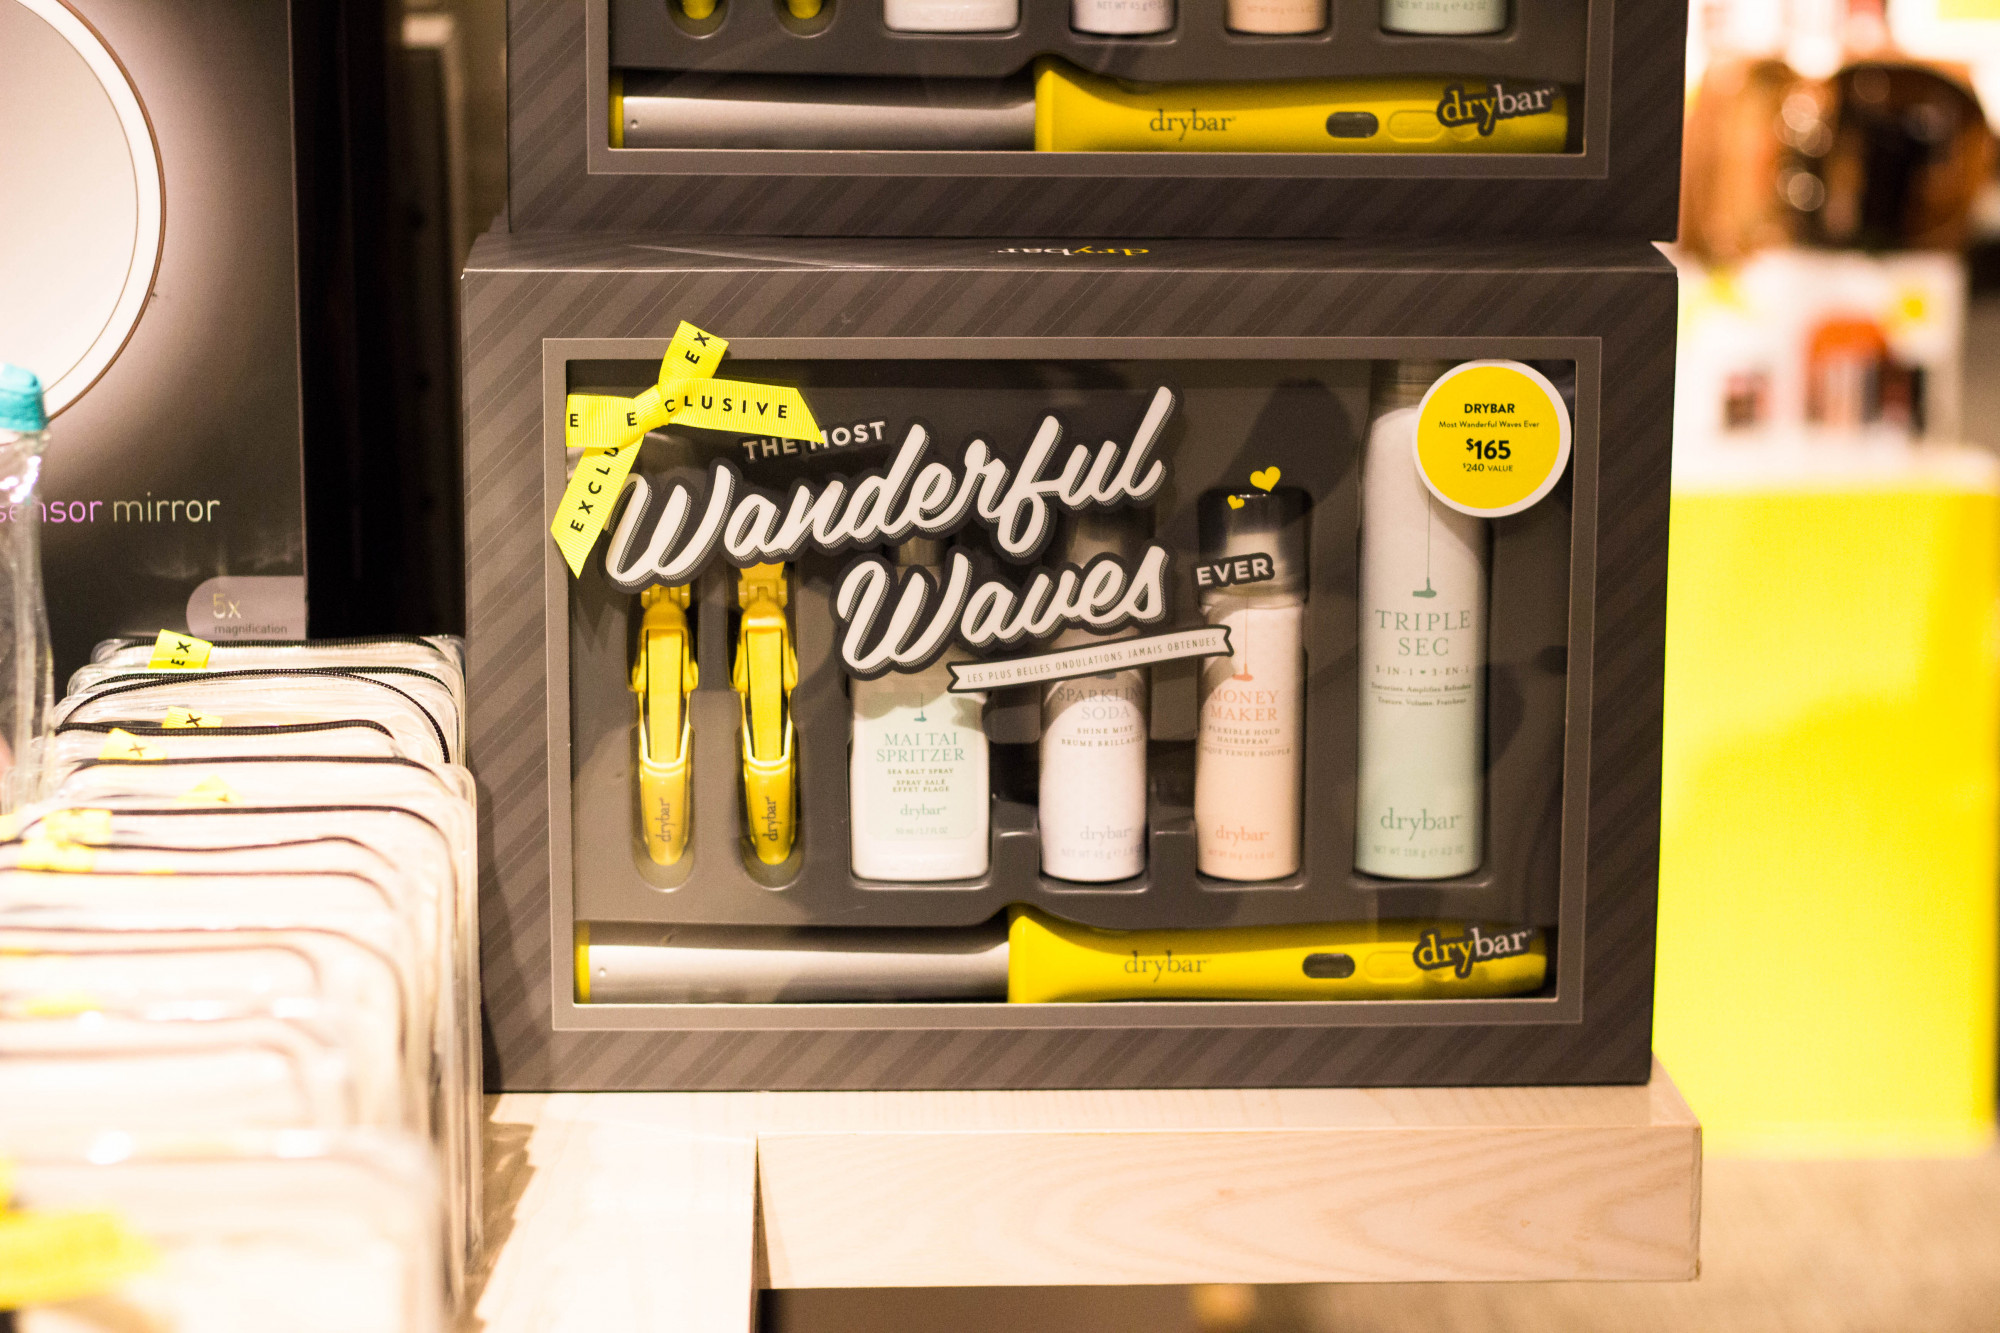 drybar value set